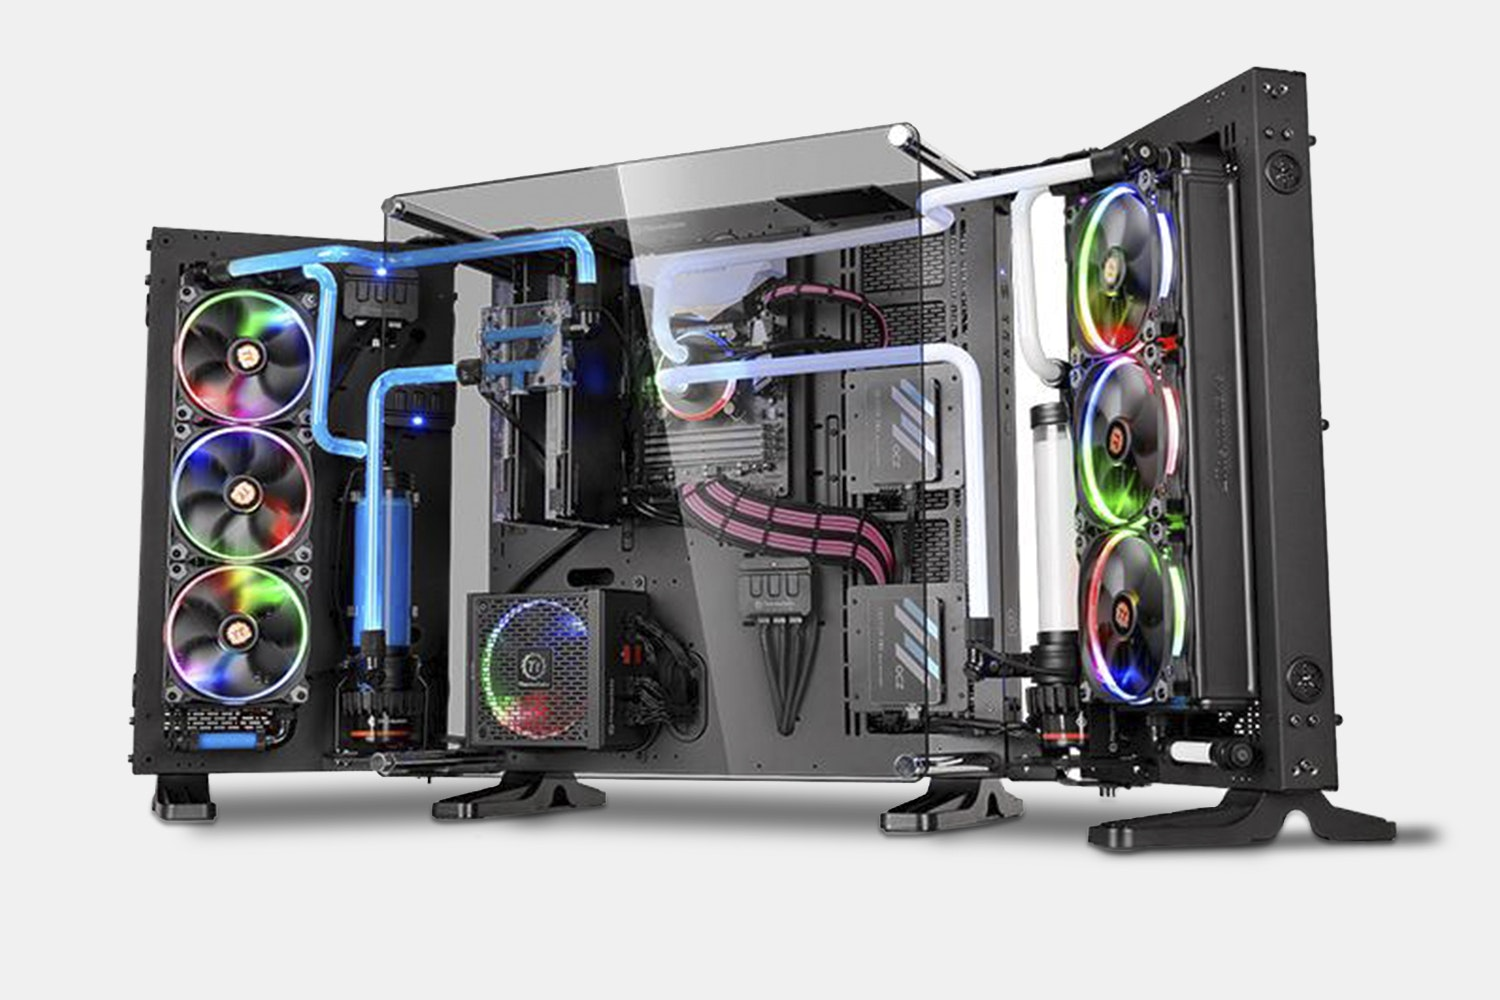 TT Core P7 Tempered Glass Full Tower Chassis